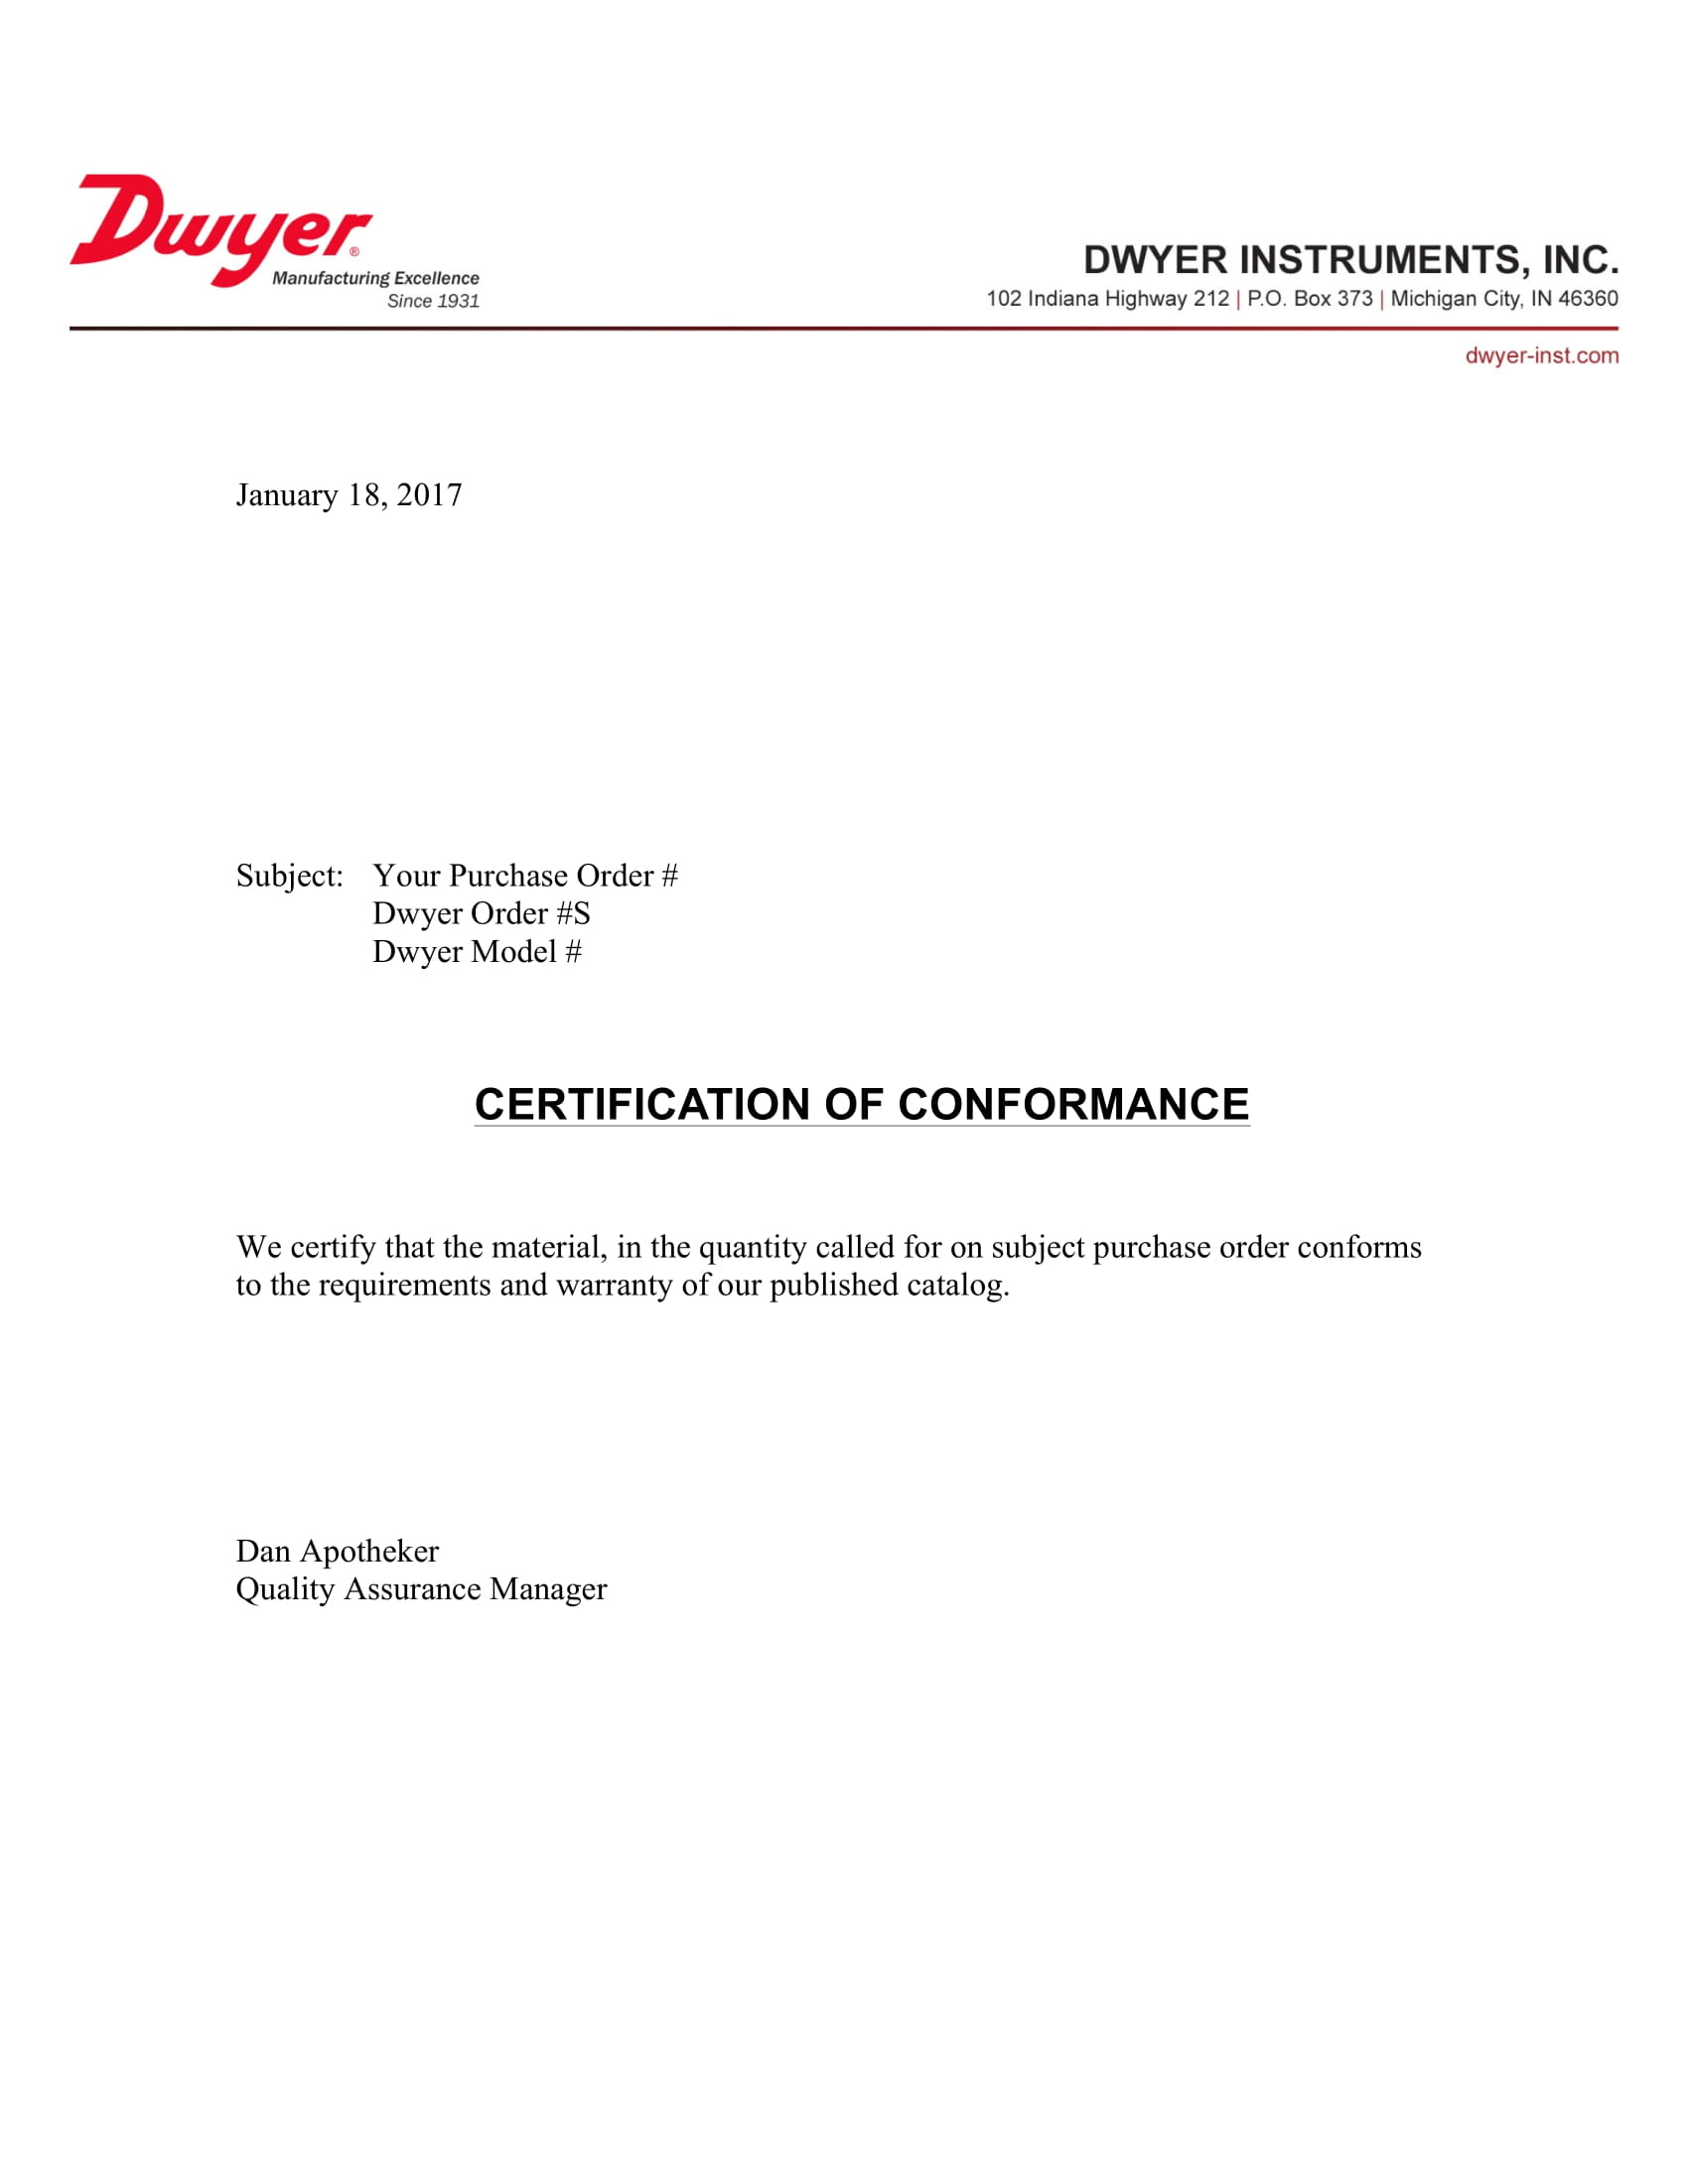 Concise-Certificate-of-Conformance-Example Quality Of Conformance Example on printable certificate, kintana non, generic certificate, aircraft certificate, manufacturer certificate, matrix template api,